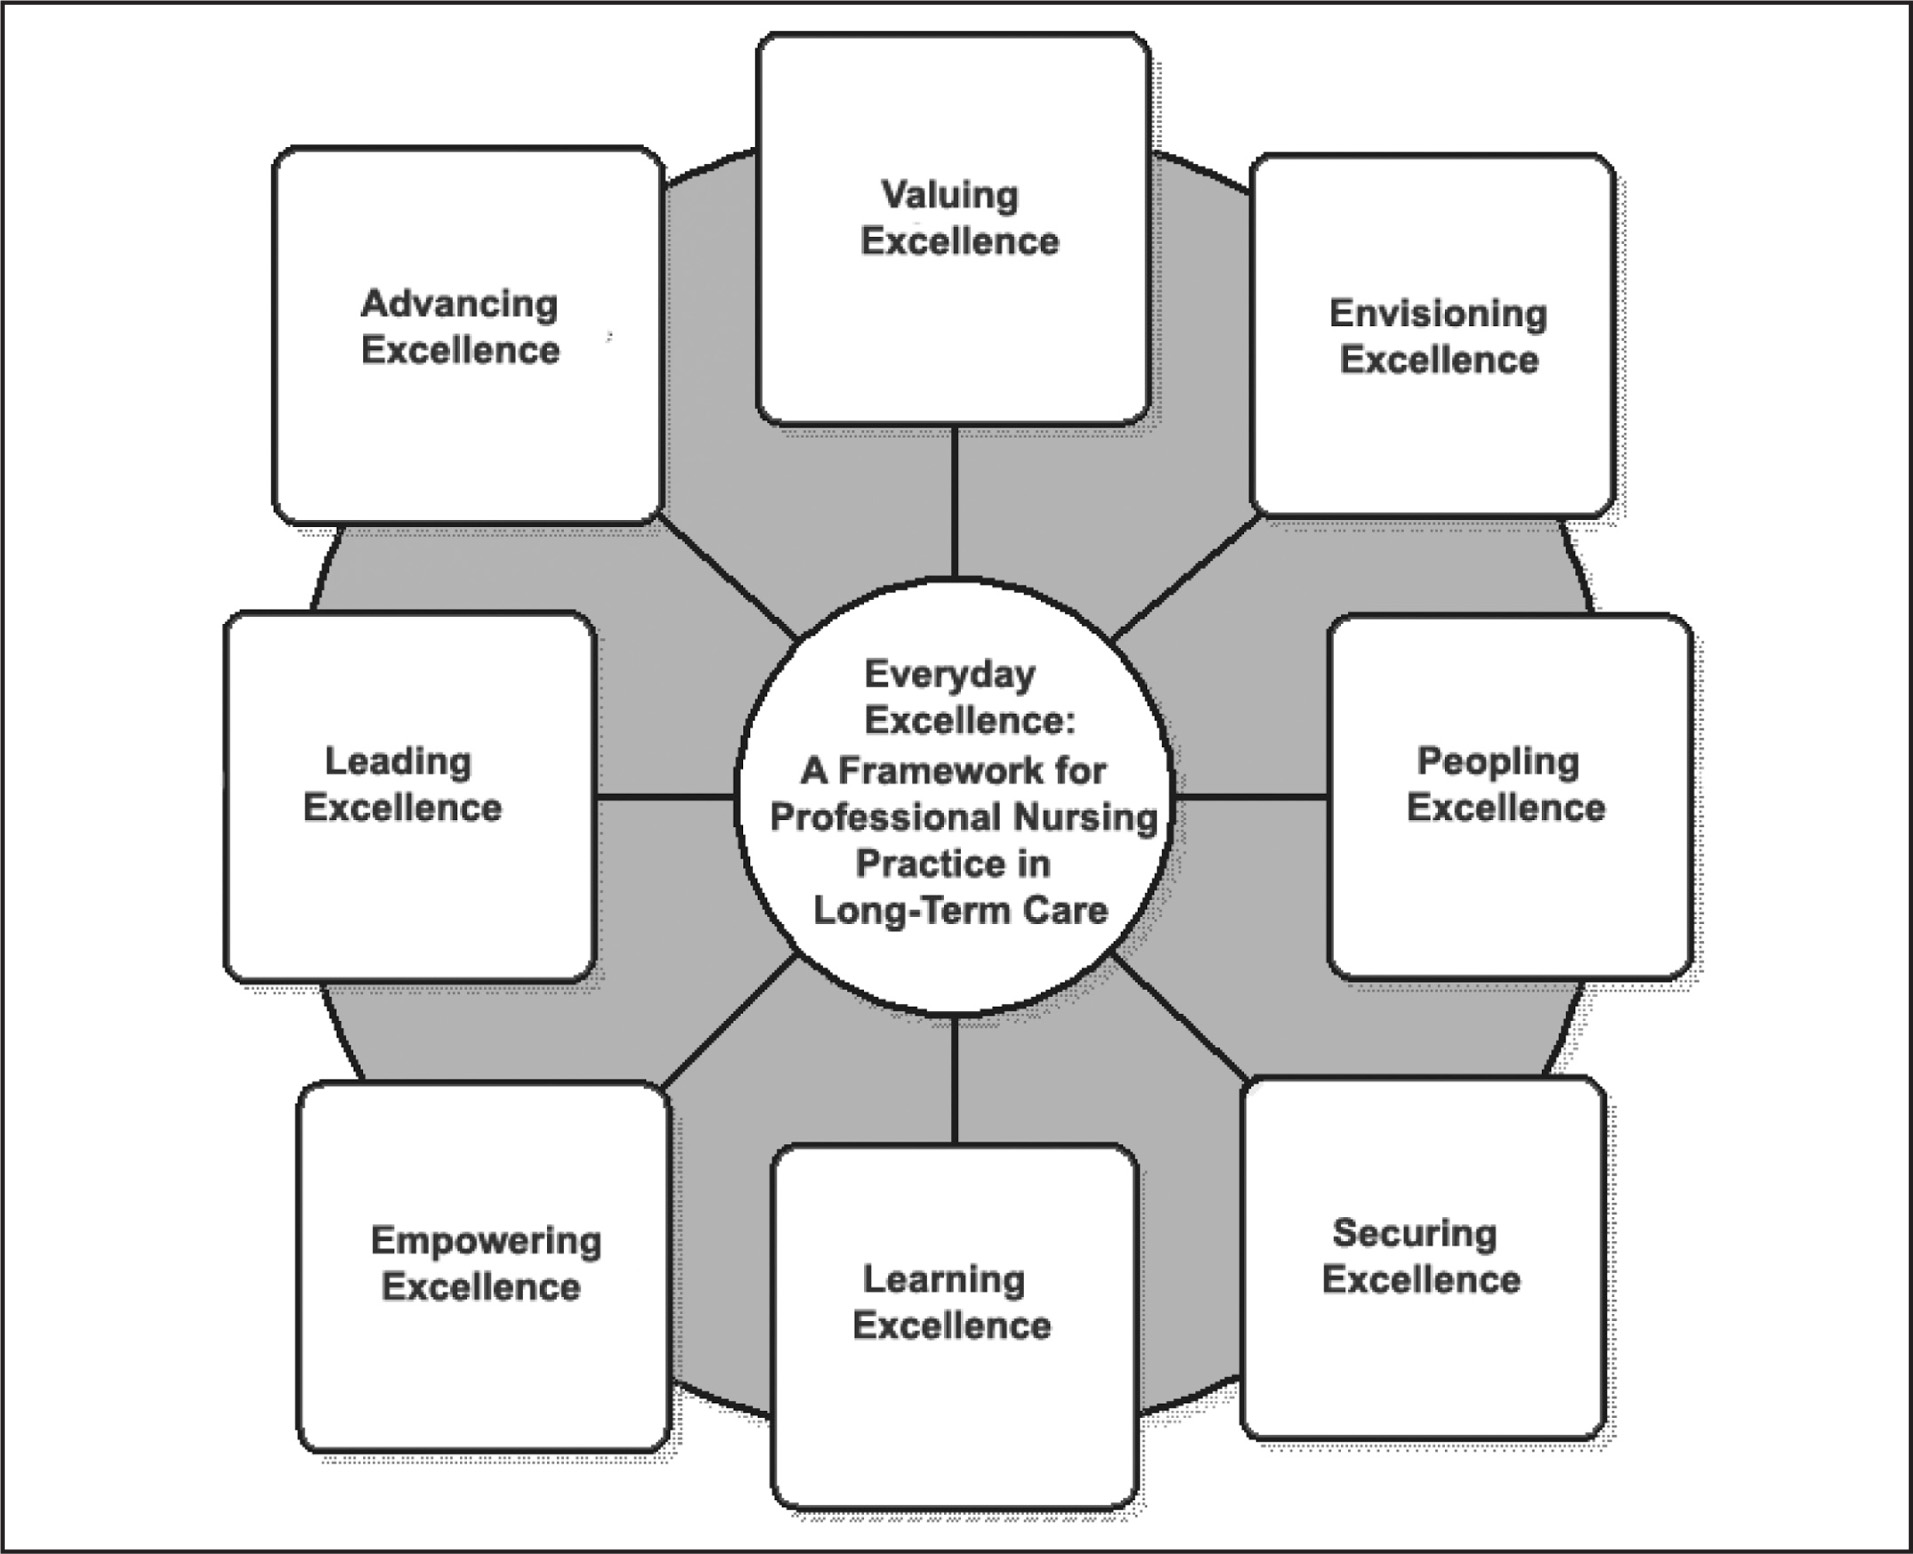 Everyday Excellence: A Framework for Professional Nursing